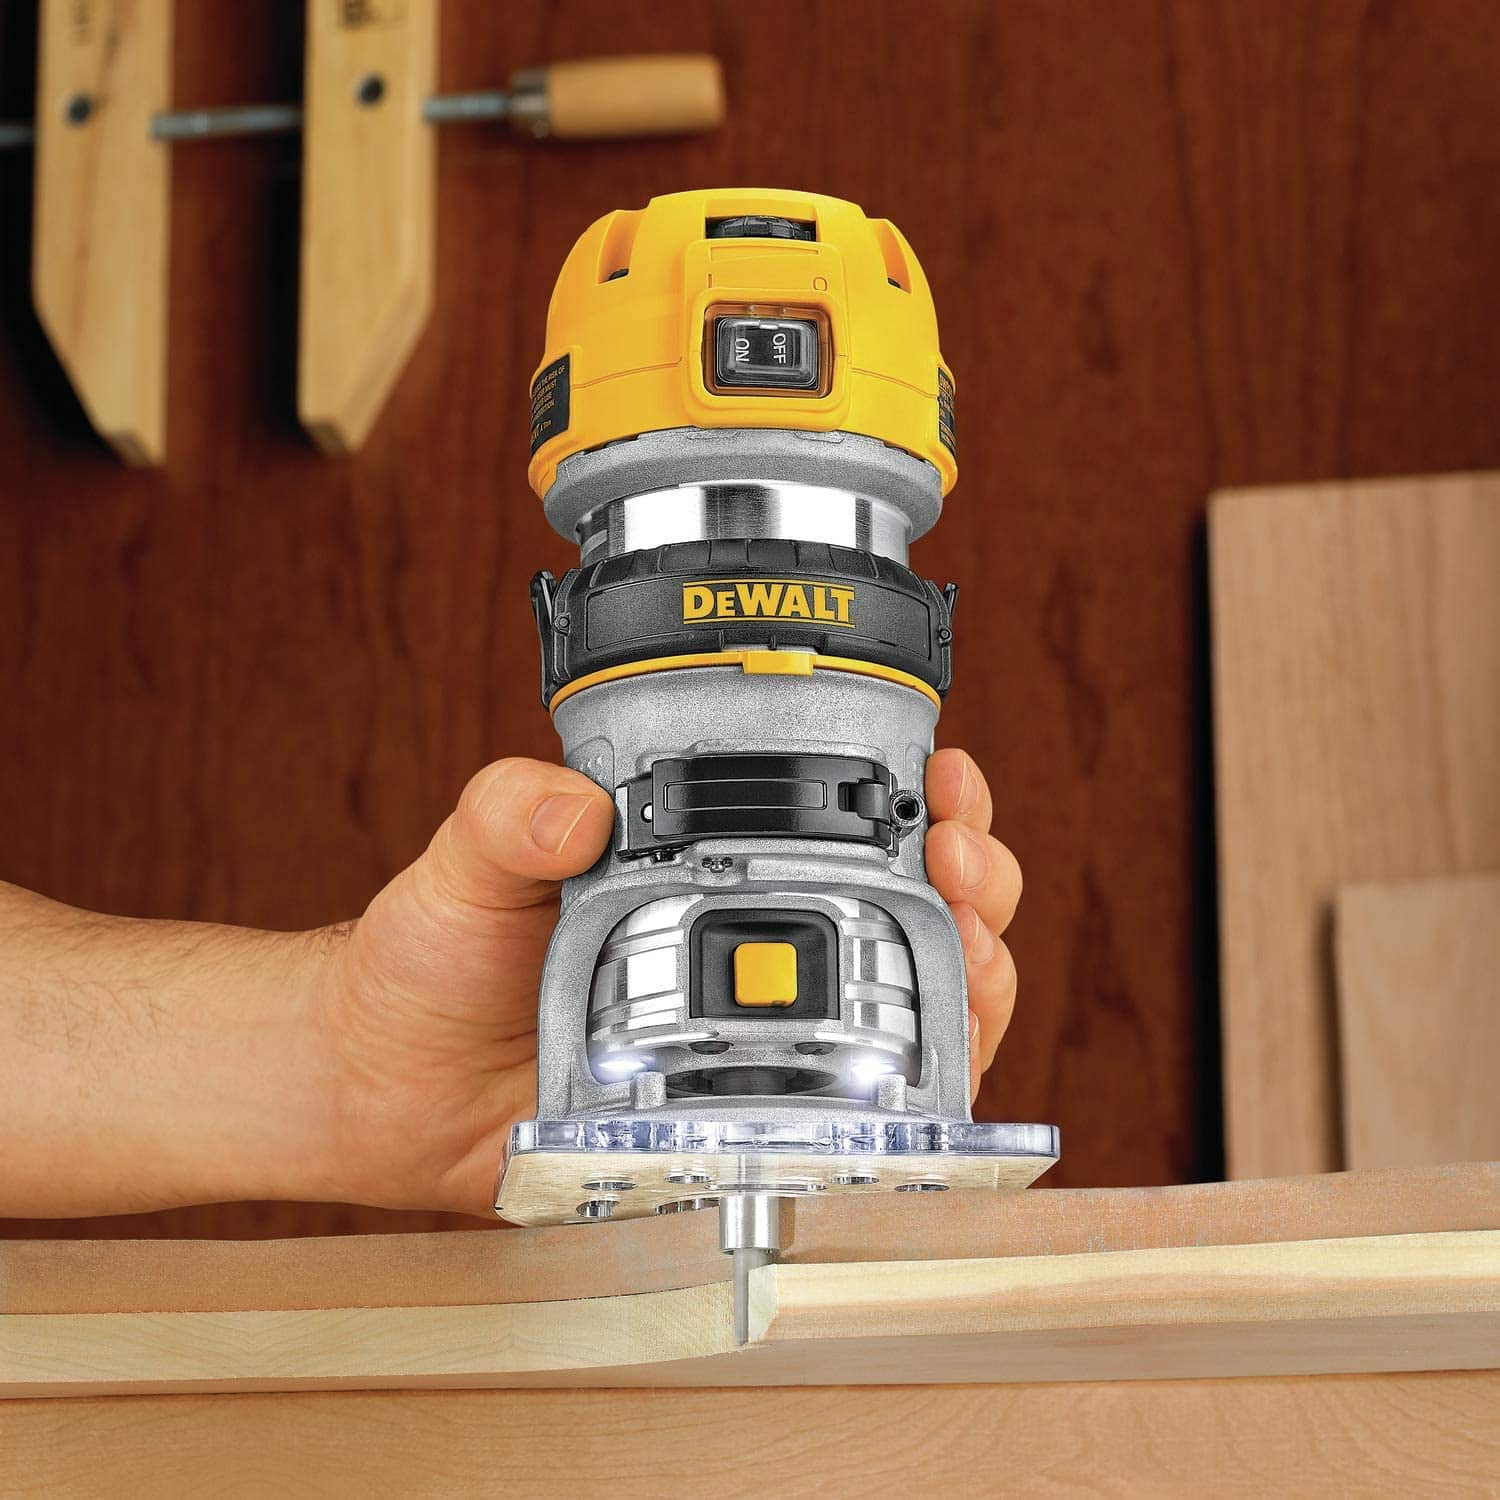 shaping wood with dewalt router